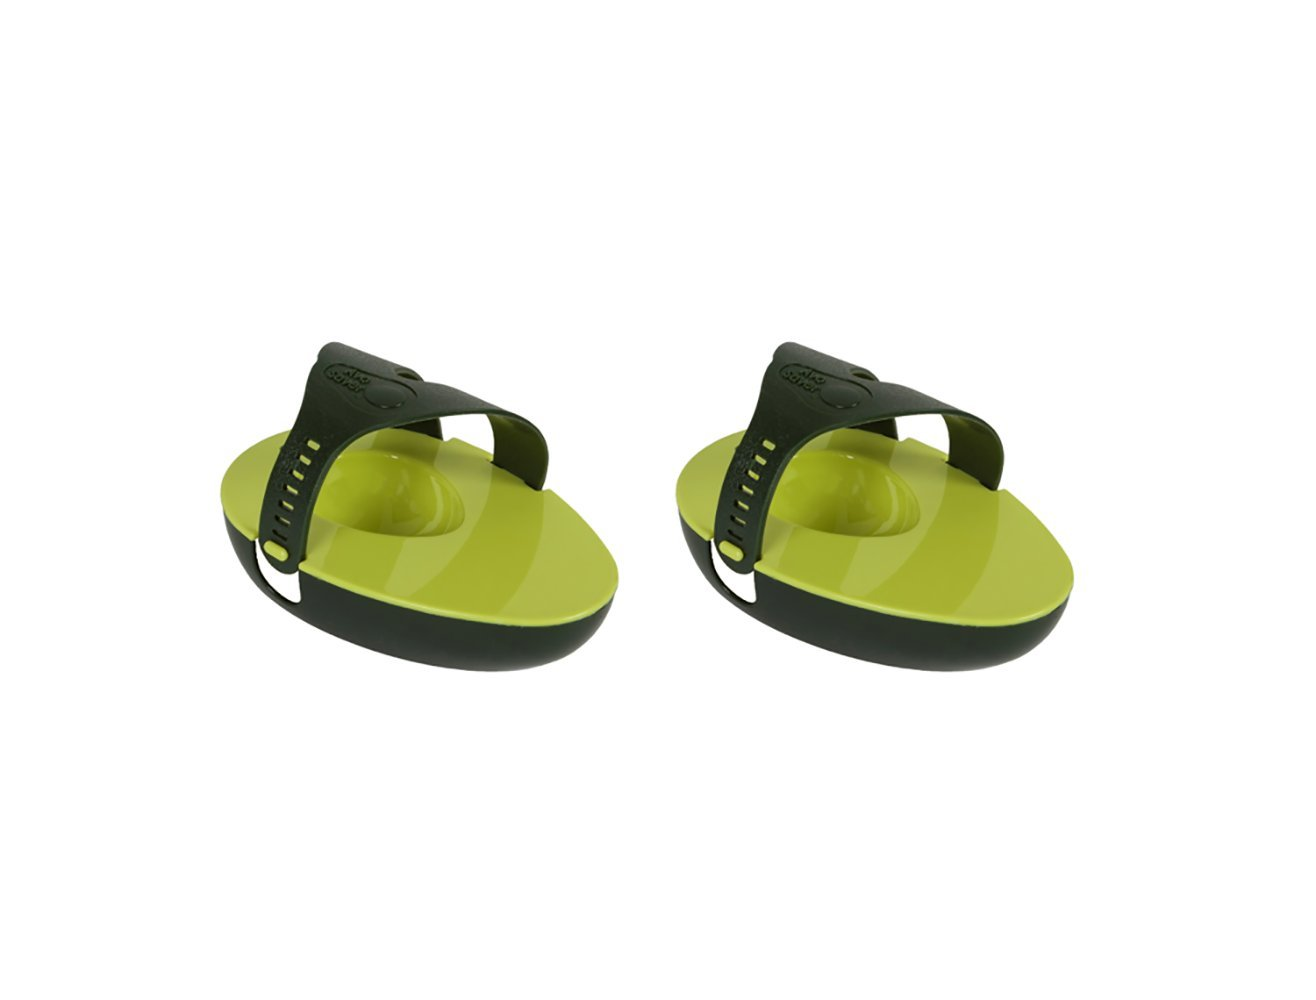 Evriholder Avo Saver Avocado Holder - Prevent your Avocados From Going Bad, Built-in Rubber Strap To Secure Your Food, Set of 2